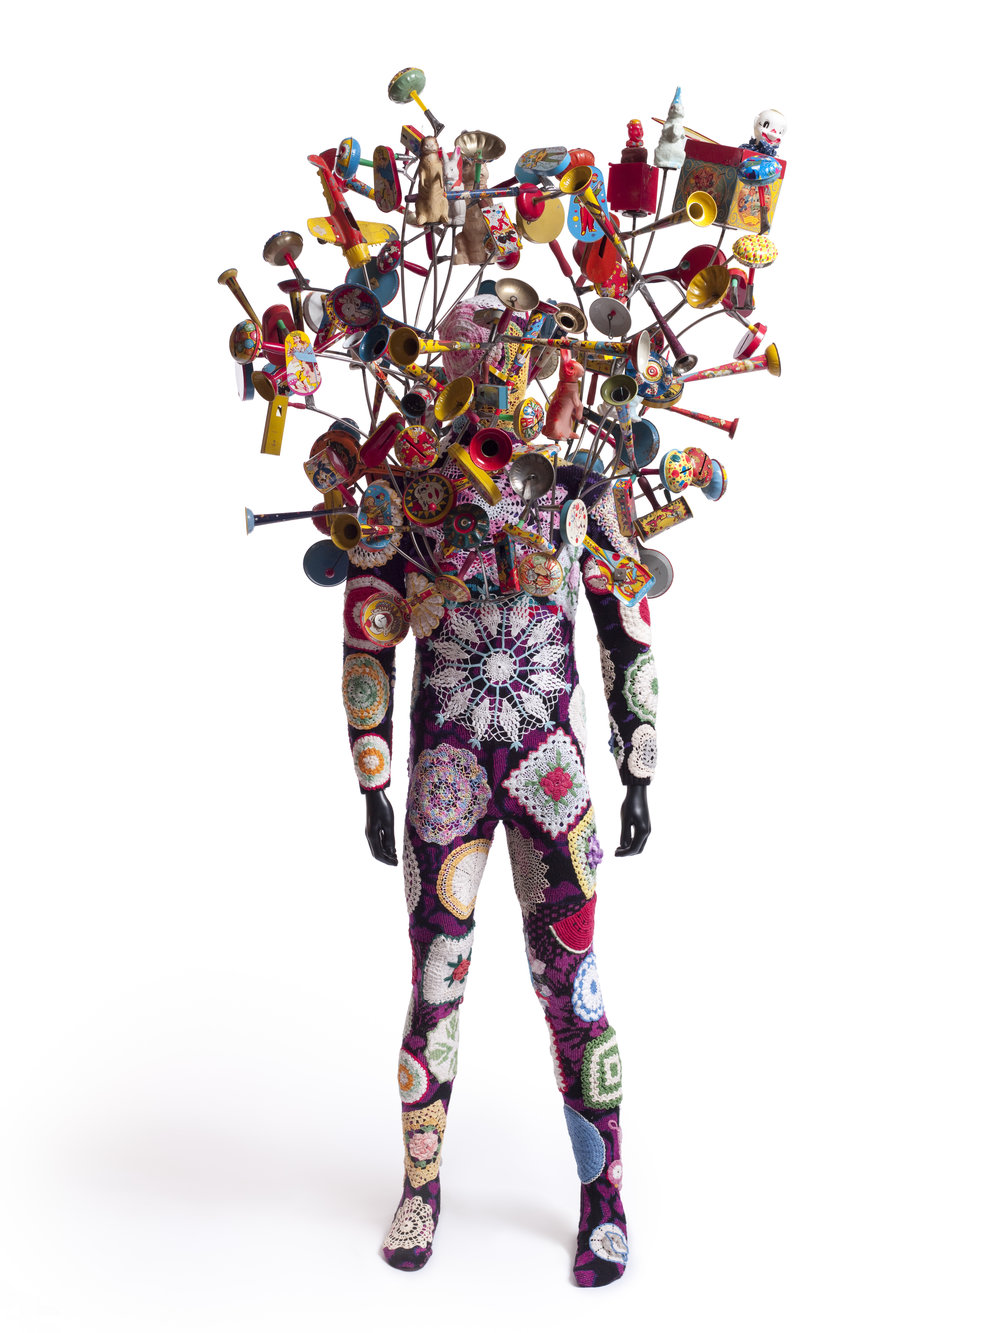 Nick Cave, (b. 1959),Soundsuit, 2010, Mixed media, 92 x 43 x48 in